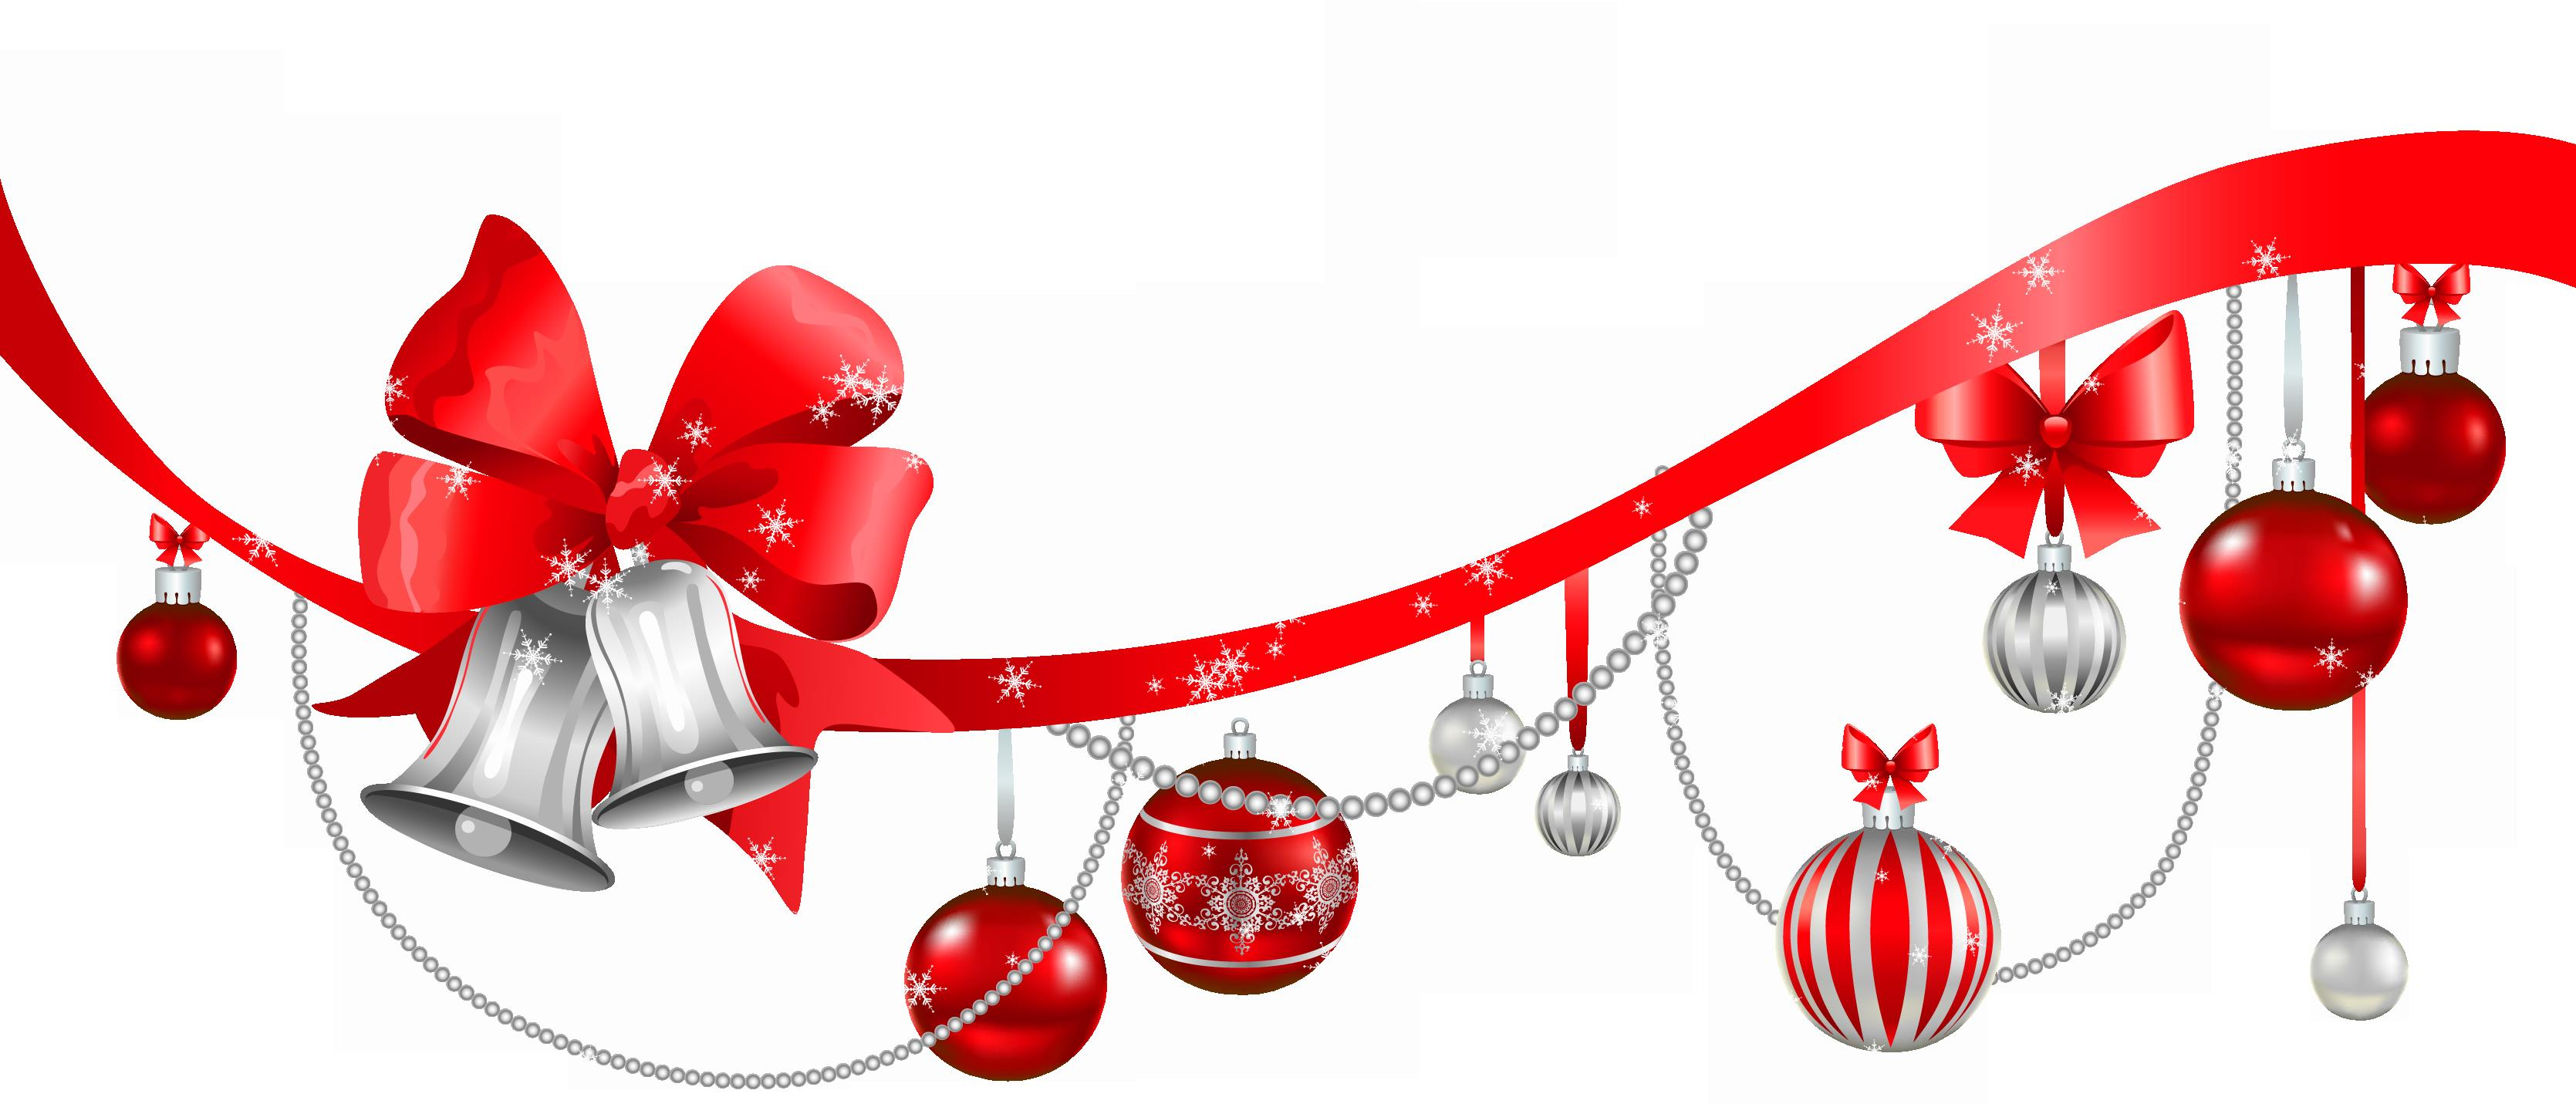 3339x1431 Christmas Decorations Clipart Png